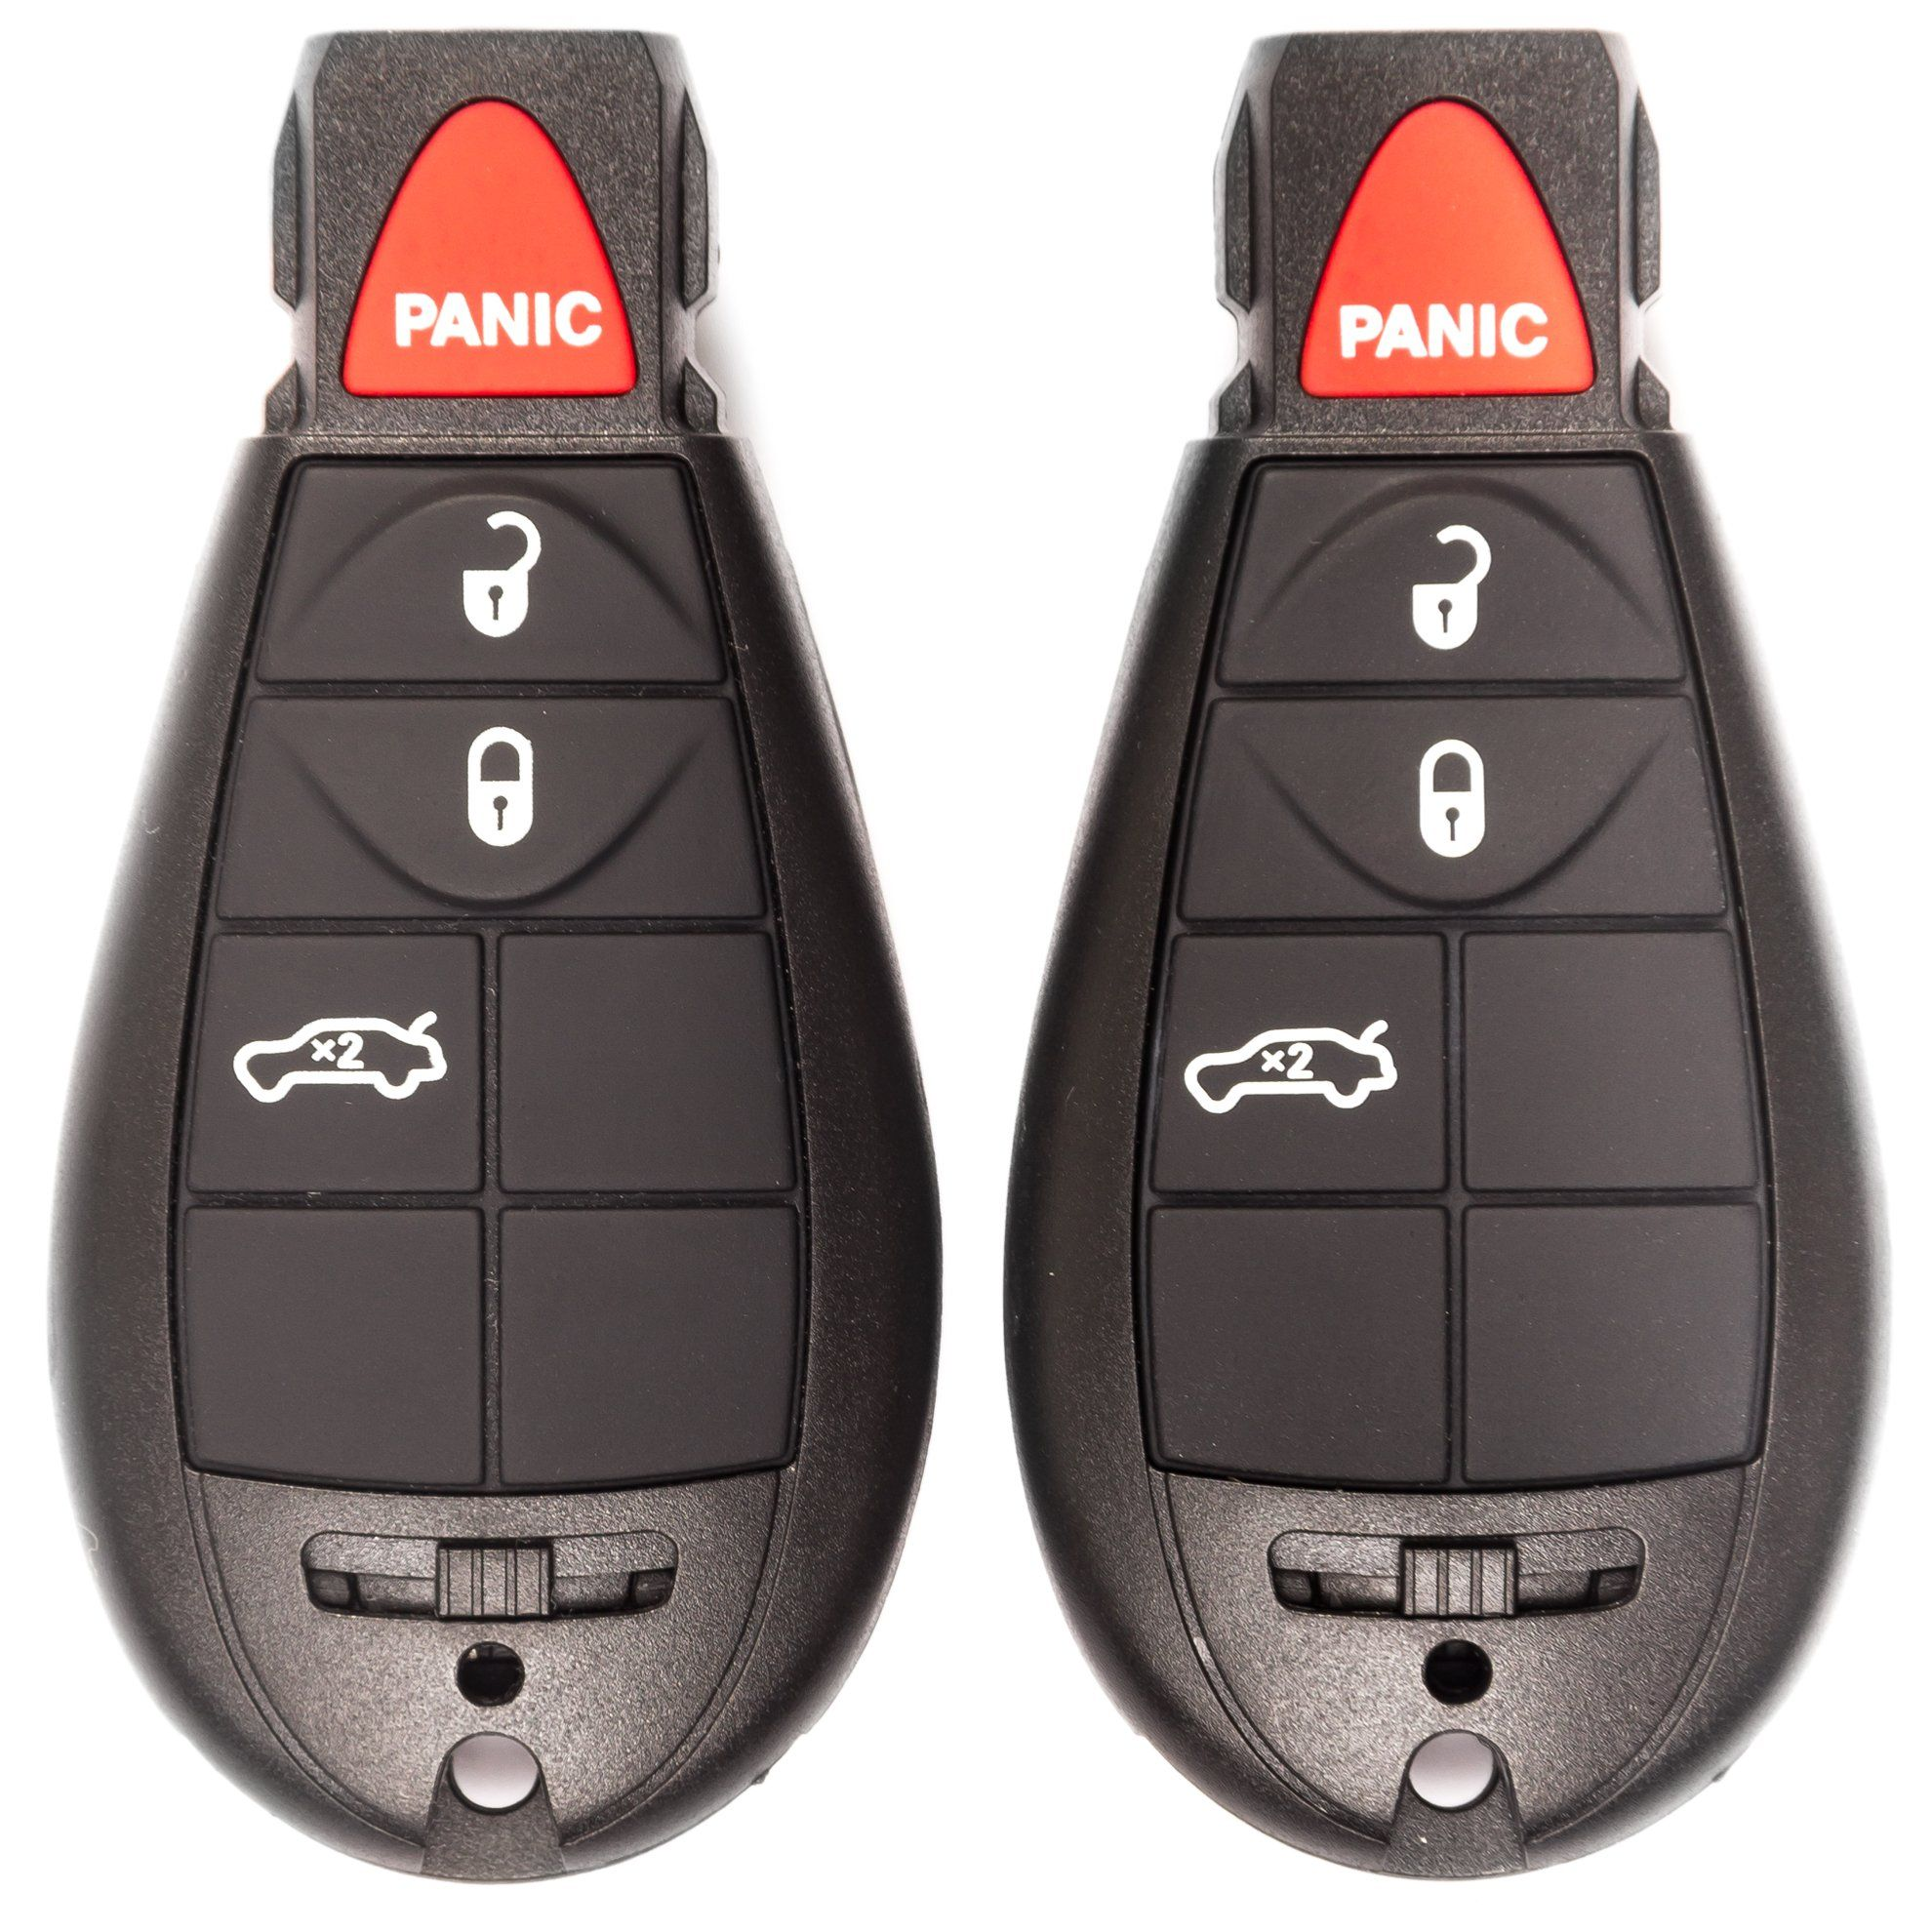 New Key Fob Remote Transmitter 4 Button Set Of 2 Key Fob